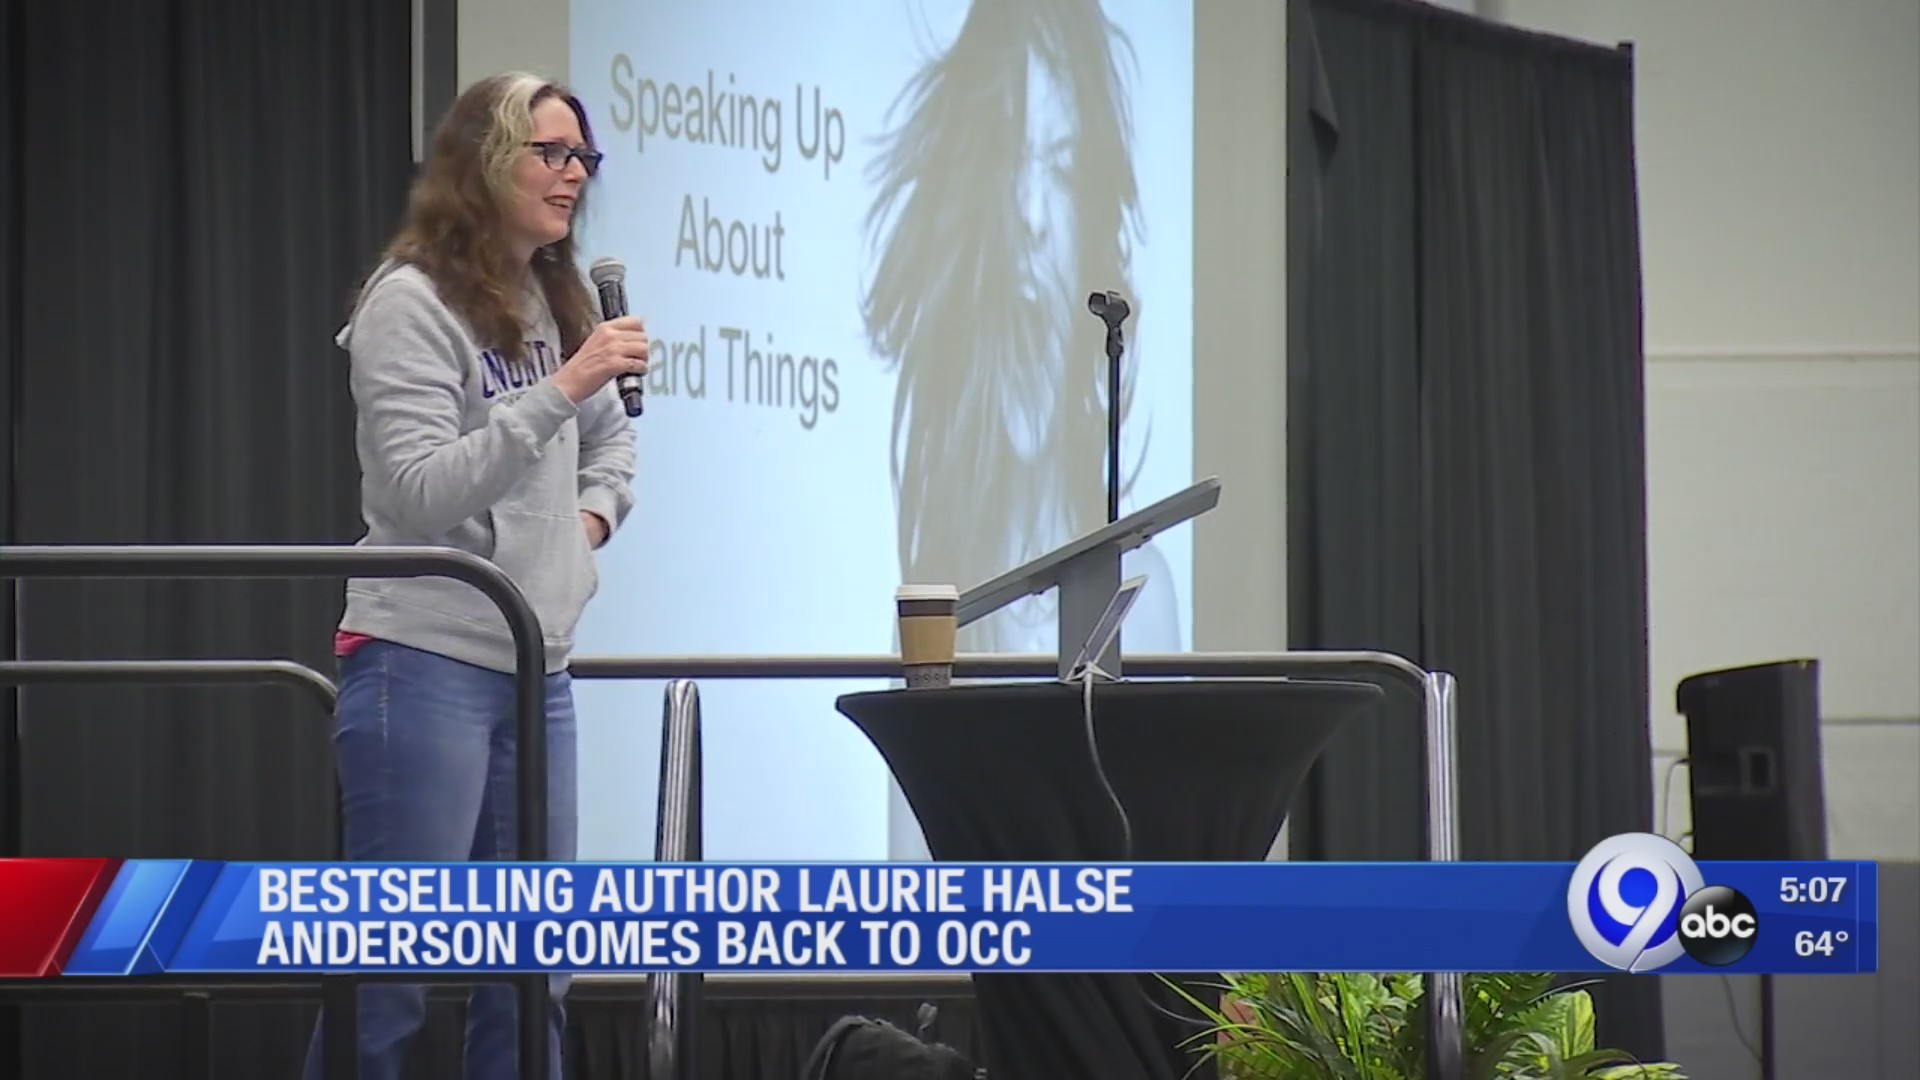 Local students hear famous author speak